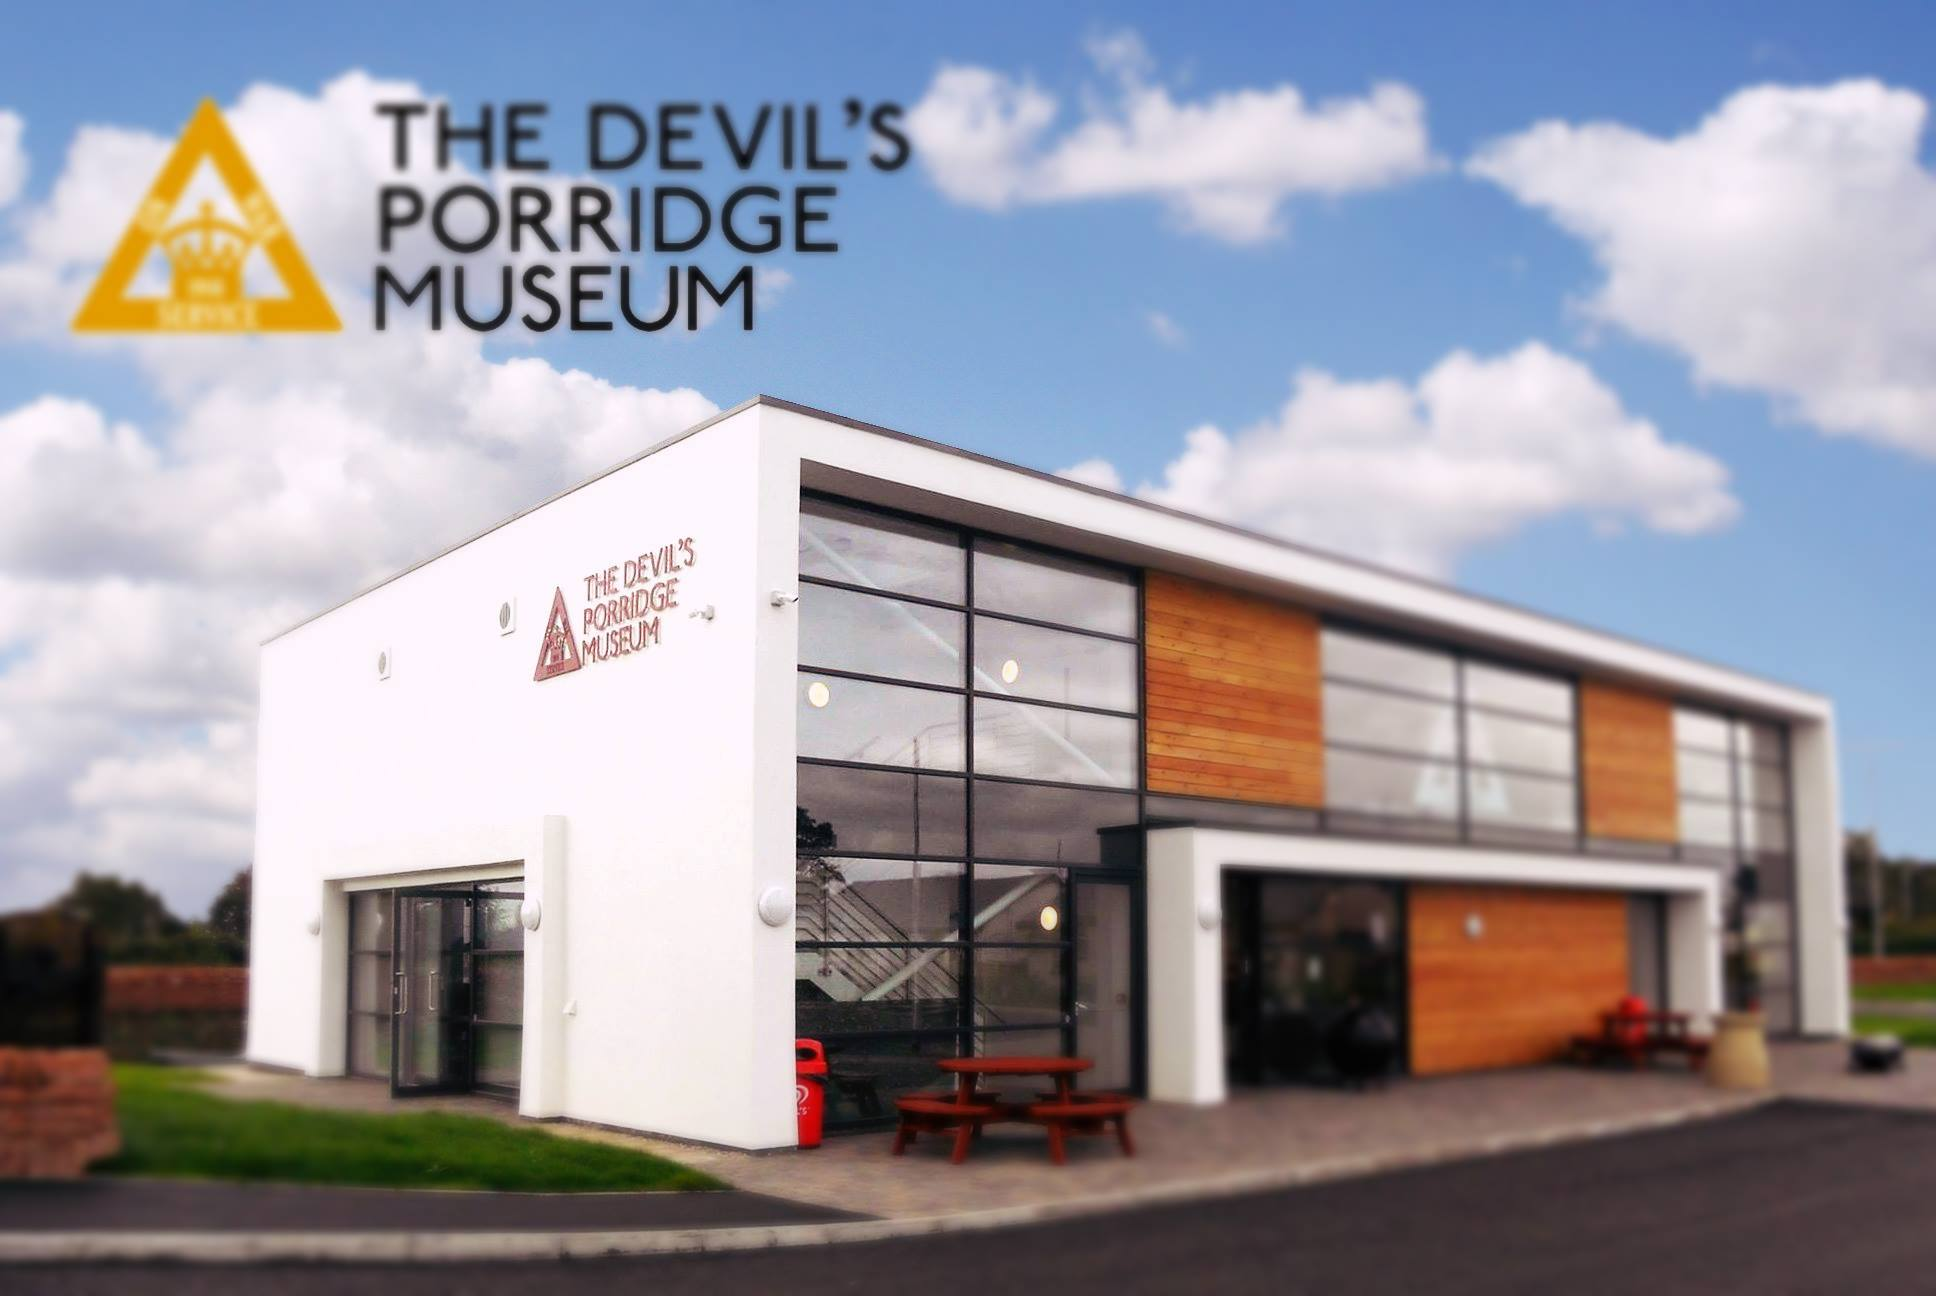 The Devils Porridge Museum